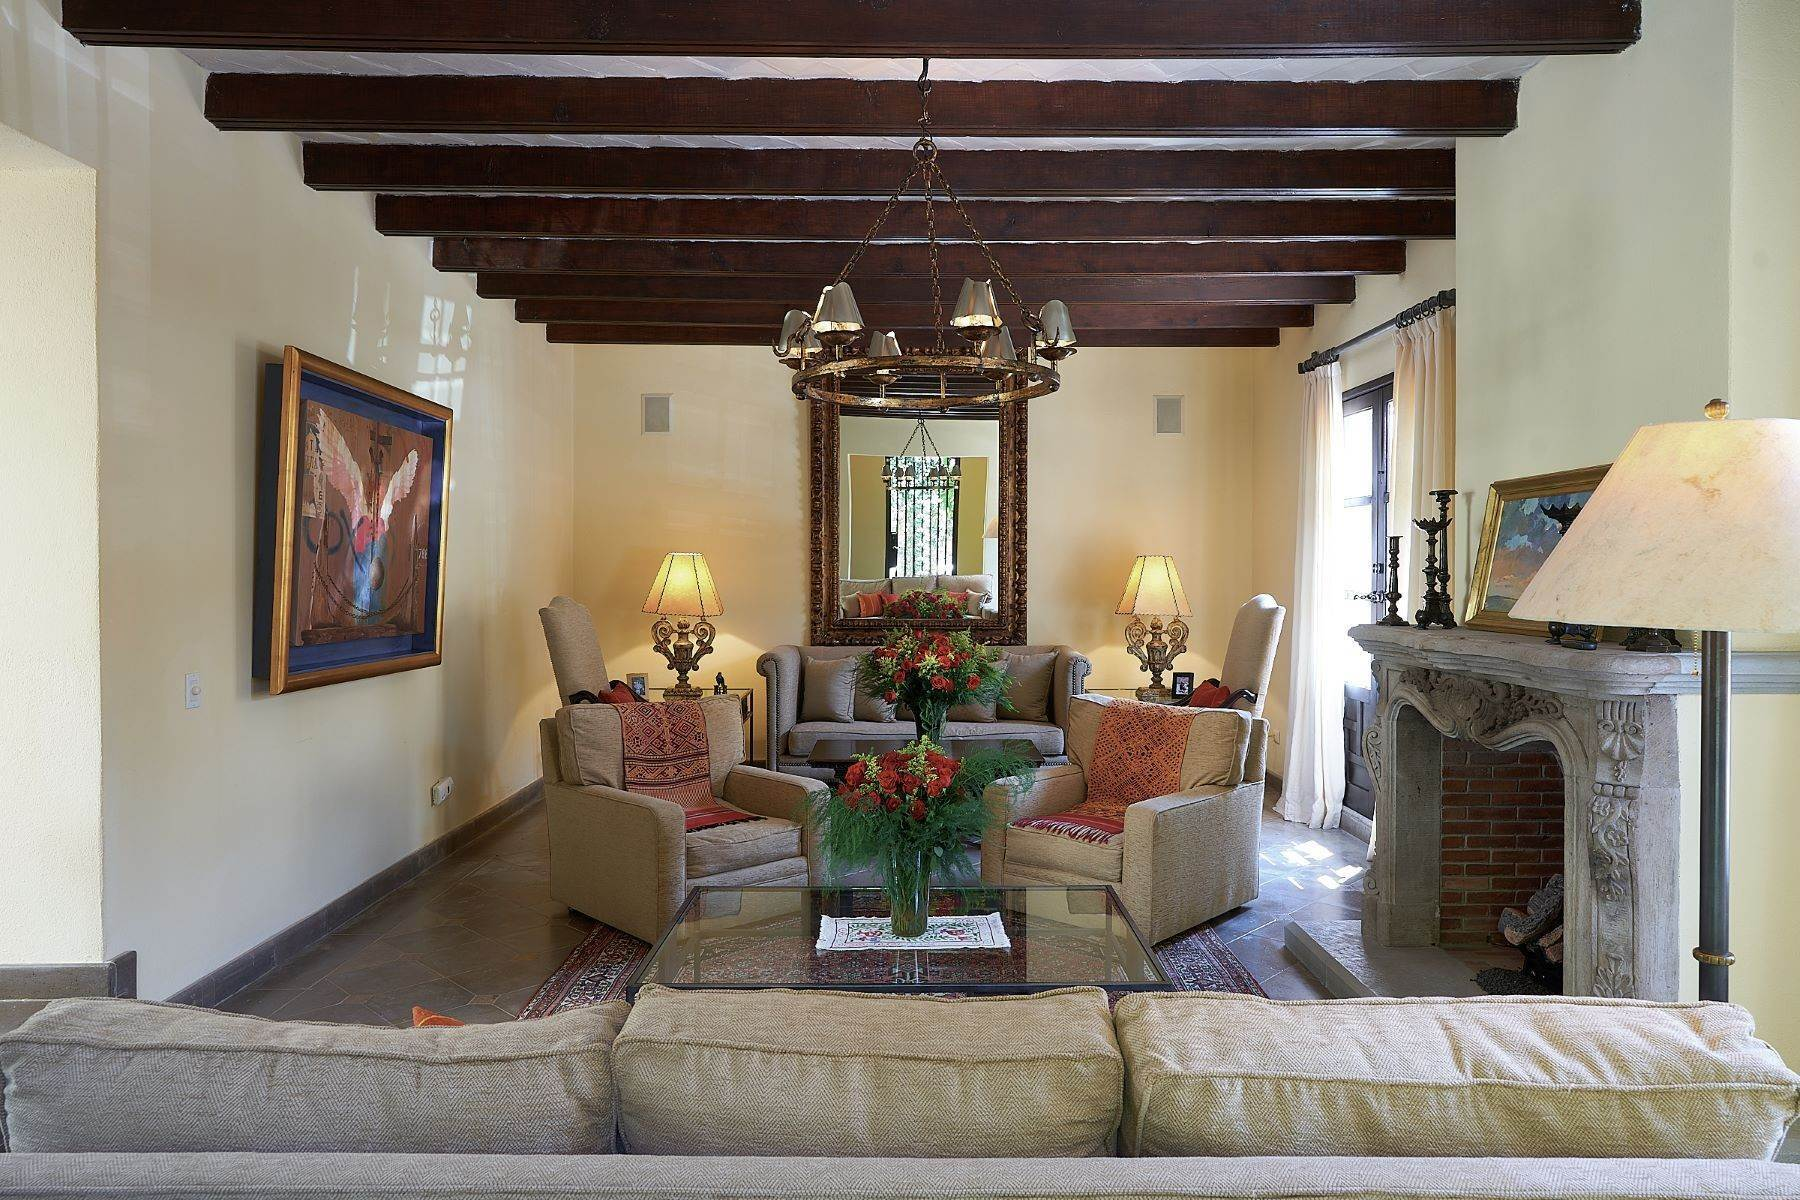 3. Single Family Homes for Sale at Casa Ixchel Privada de Pila Seca 6 San Miguel De Allende, Guanajuato 37700 Mexico